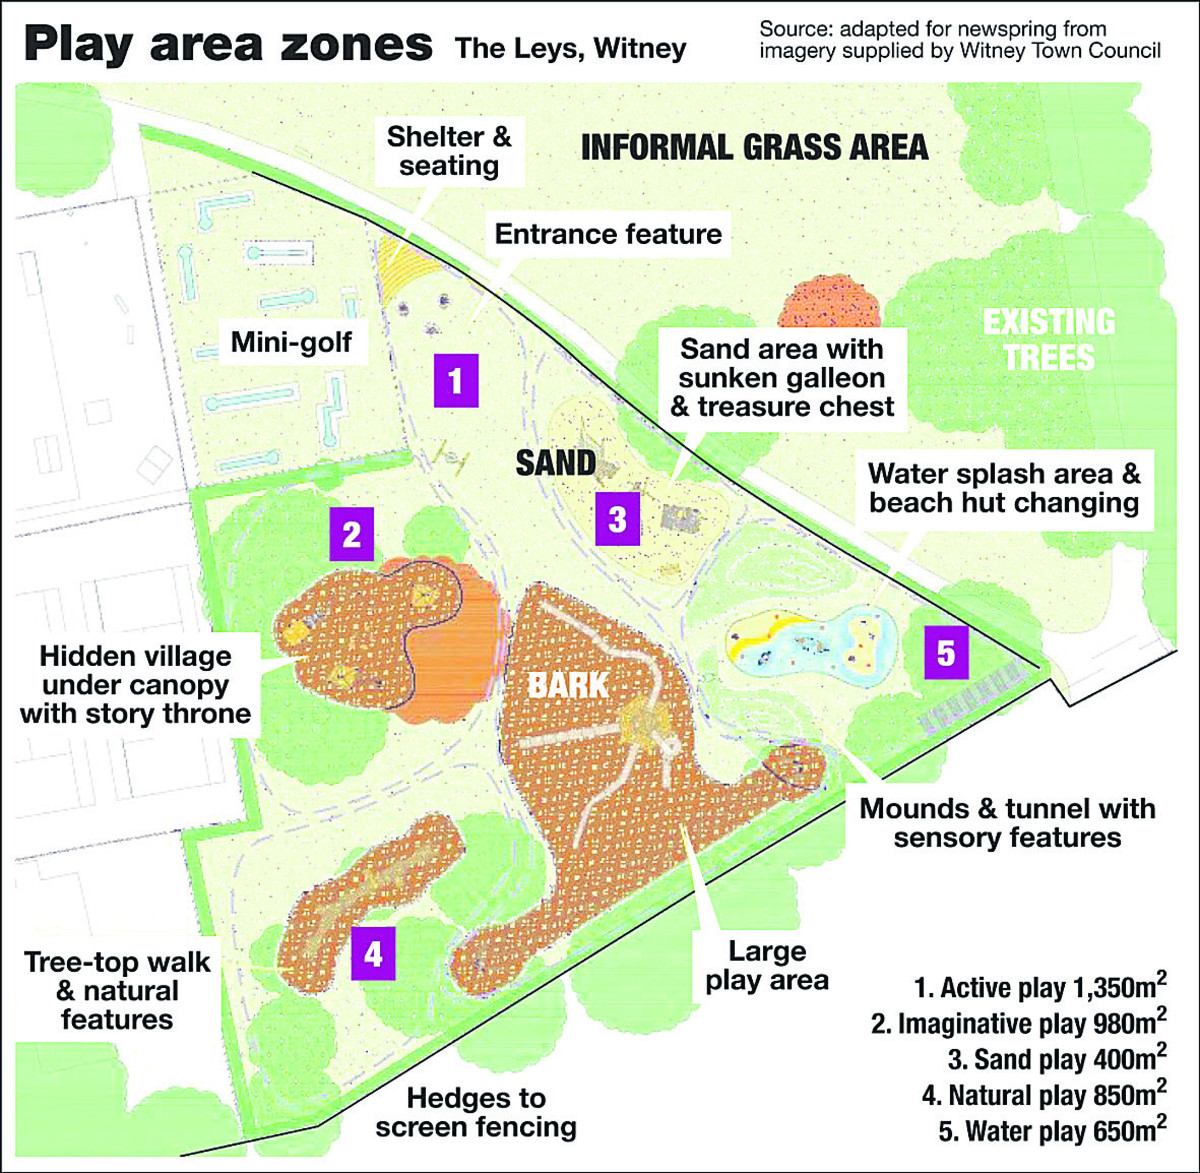 Council aiming to make big splash with a new play area